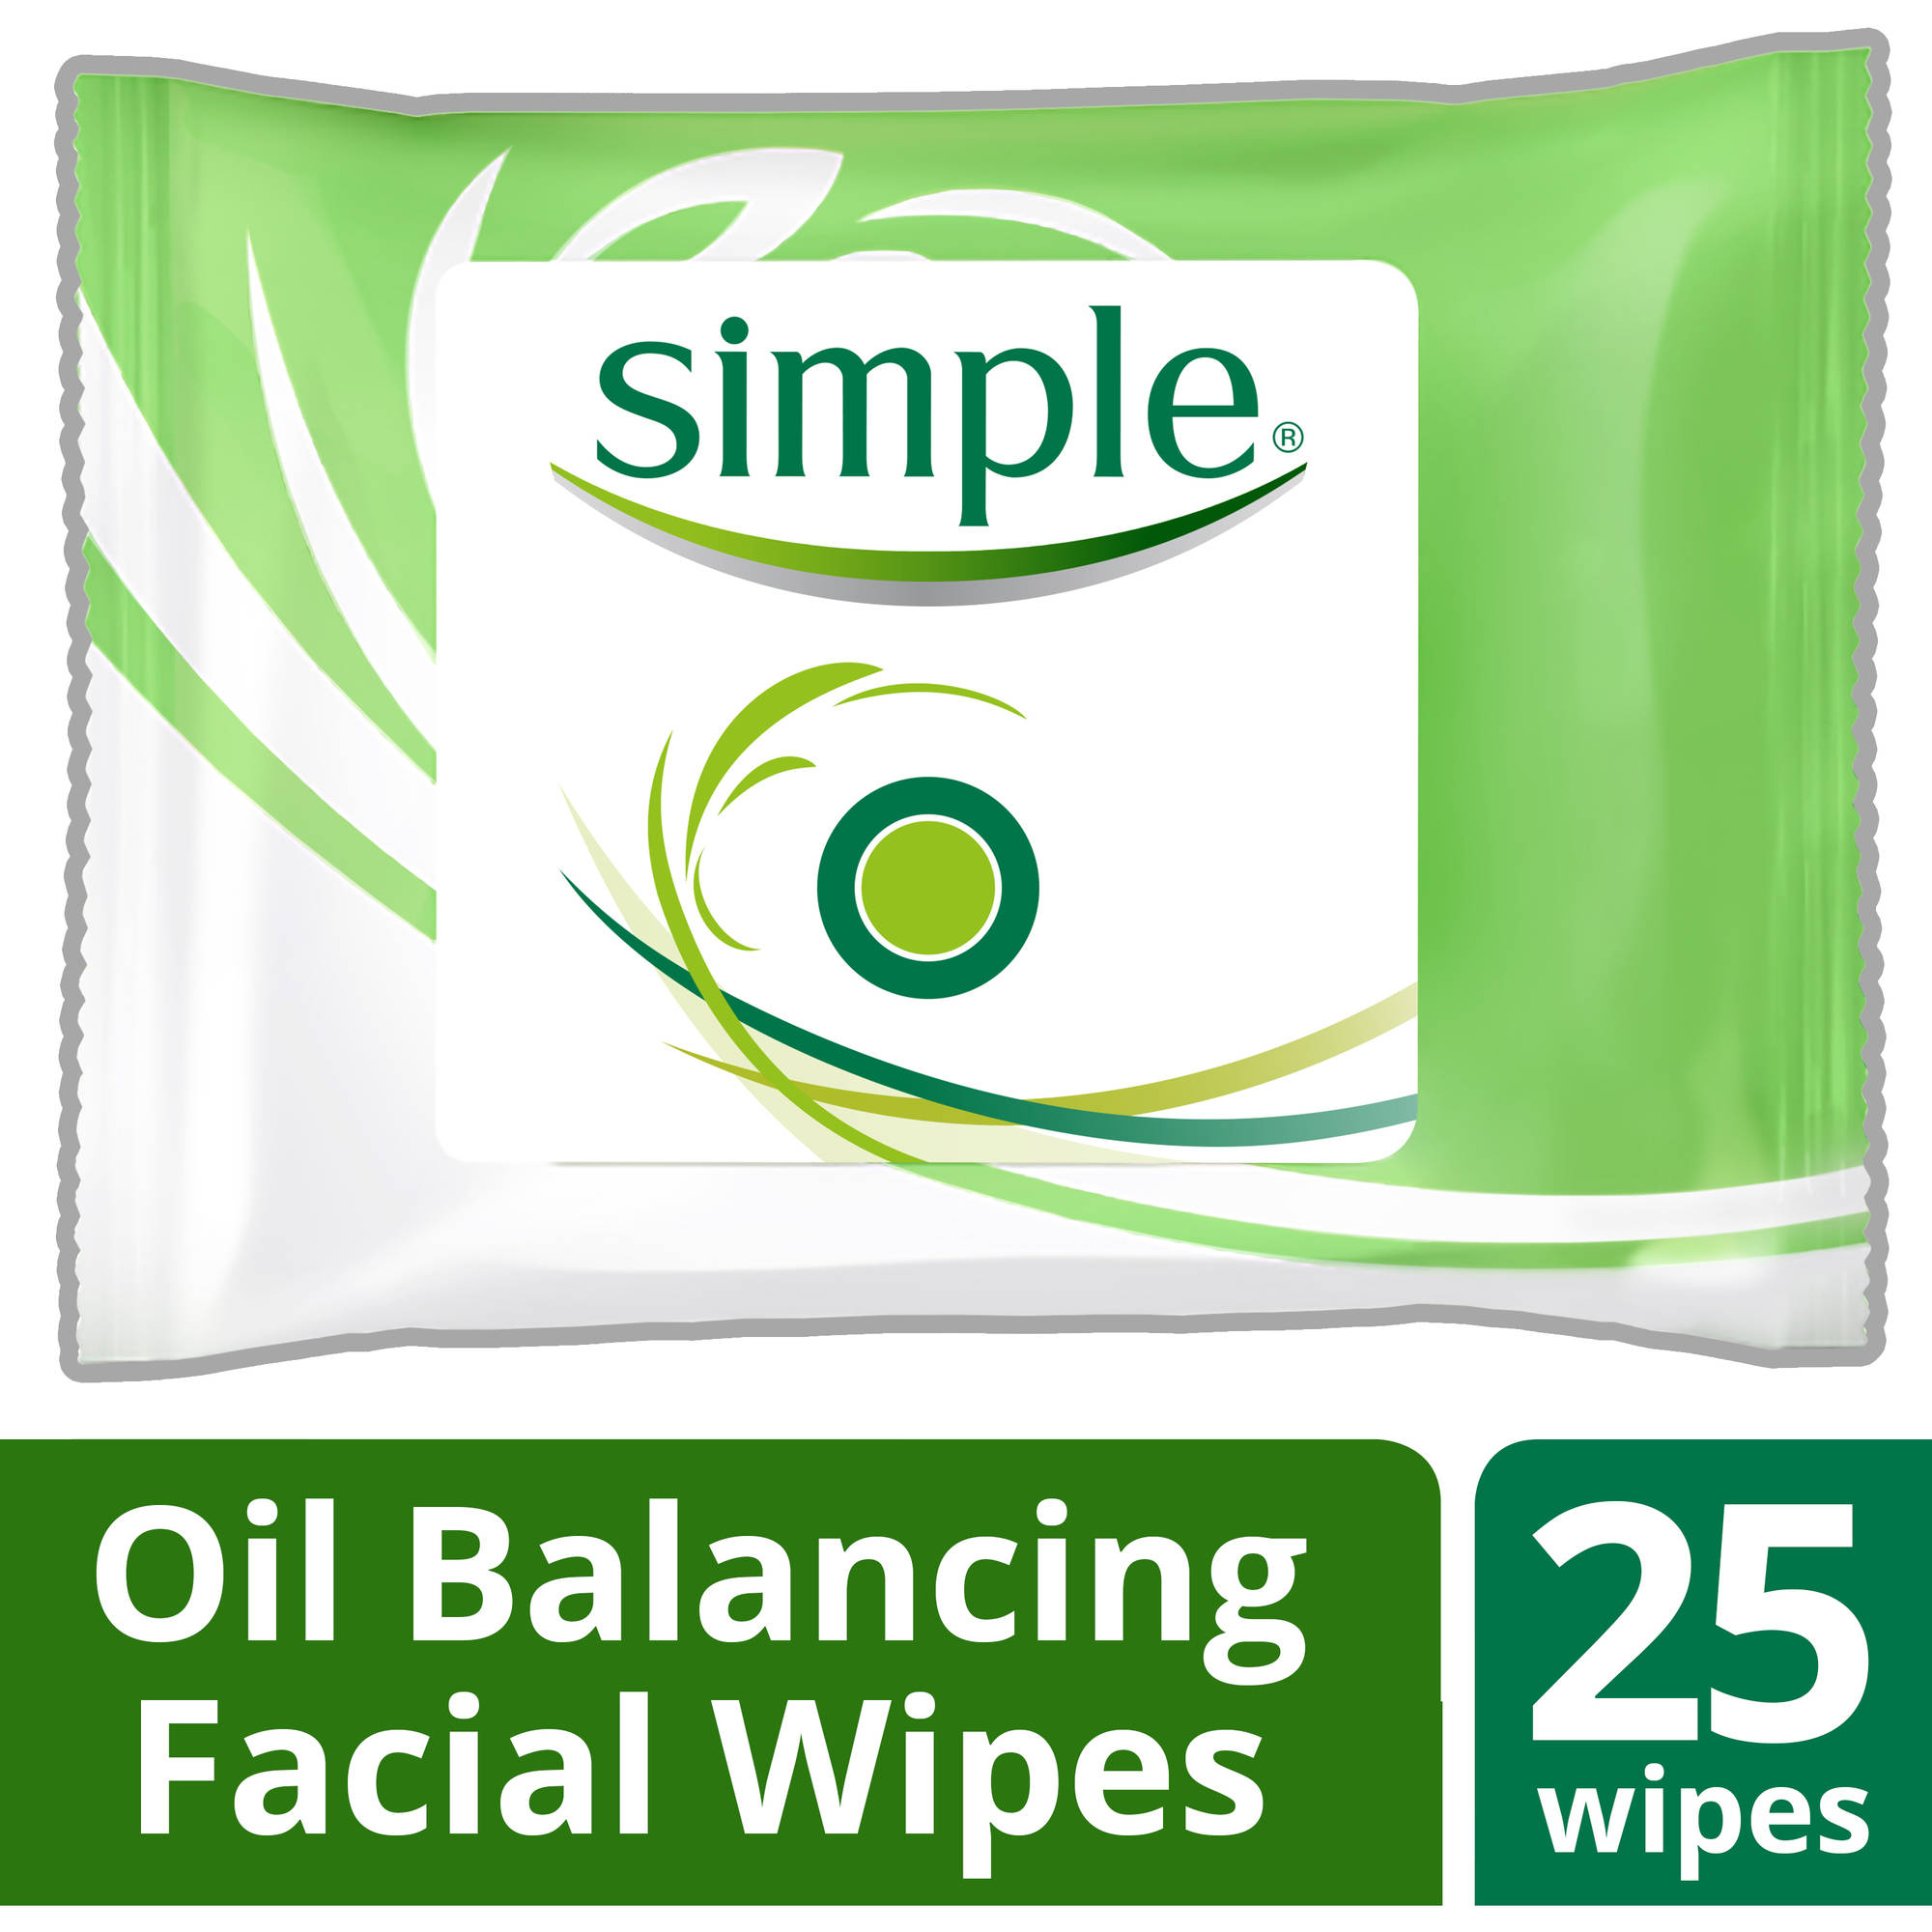 Simple Oil Balancing Cleansing Facial Wipes, 25 ct